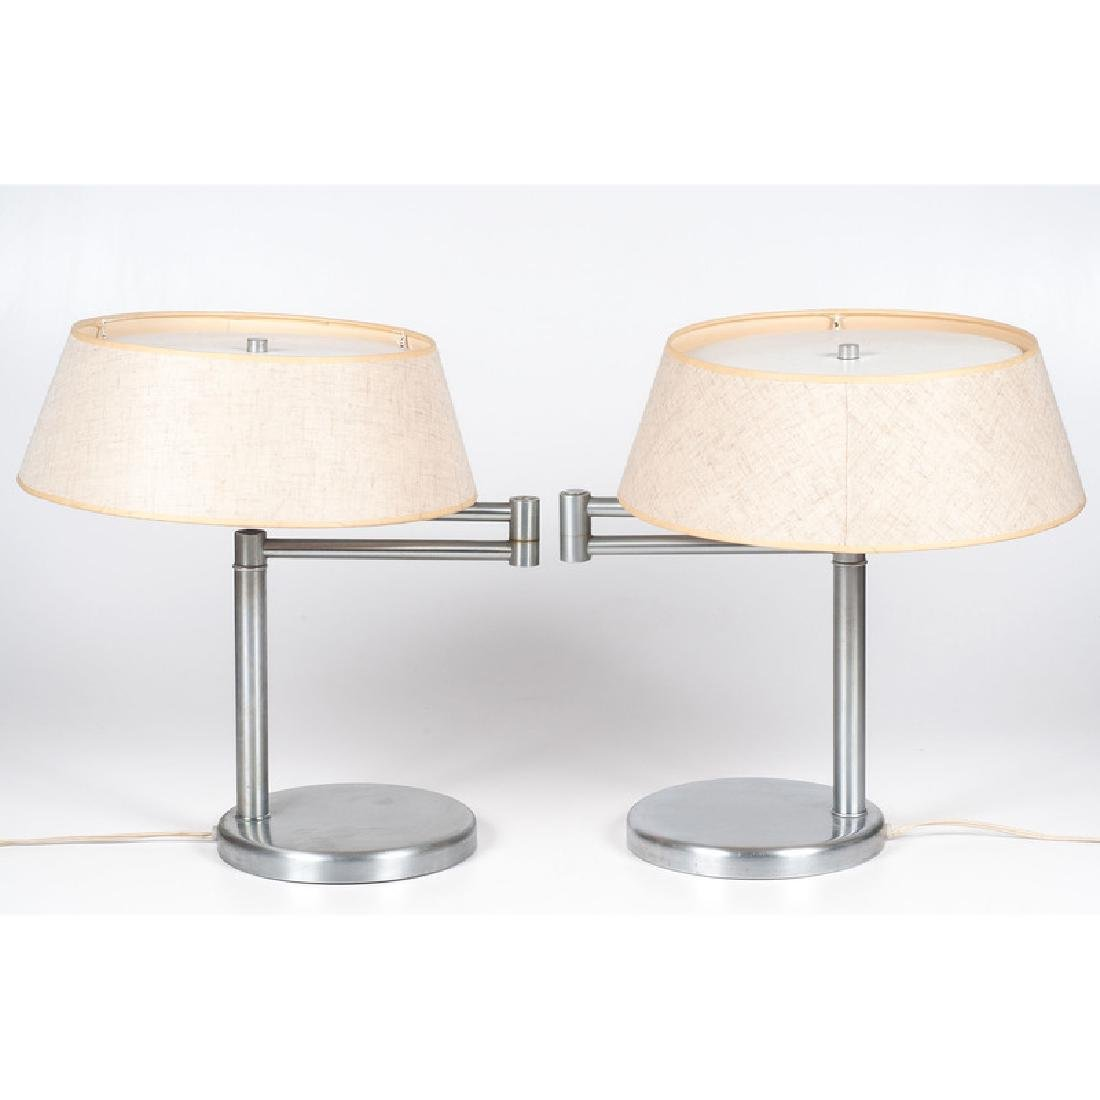 Walter von Nessen Swing-Arm Table Lamps